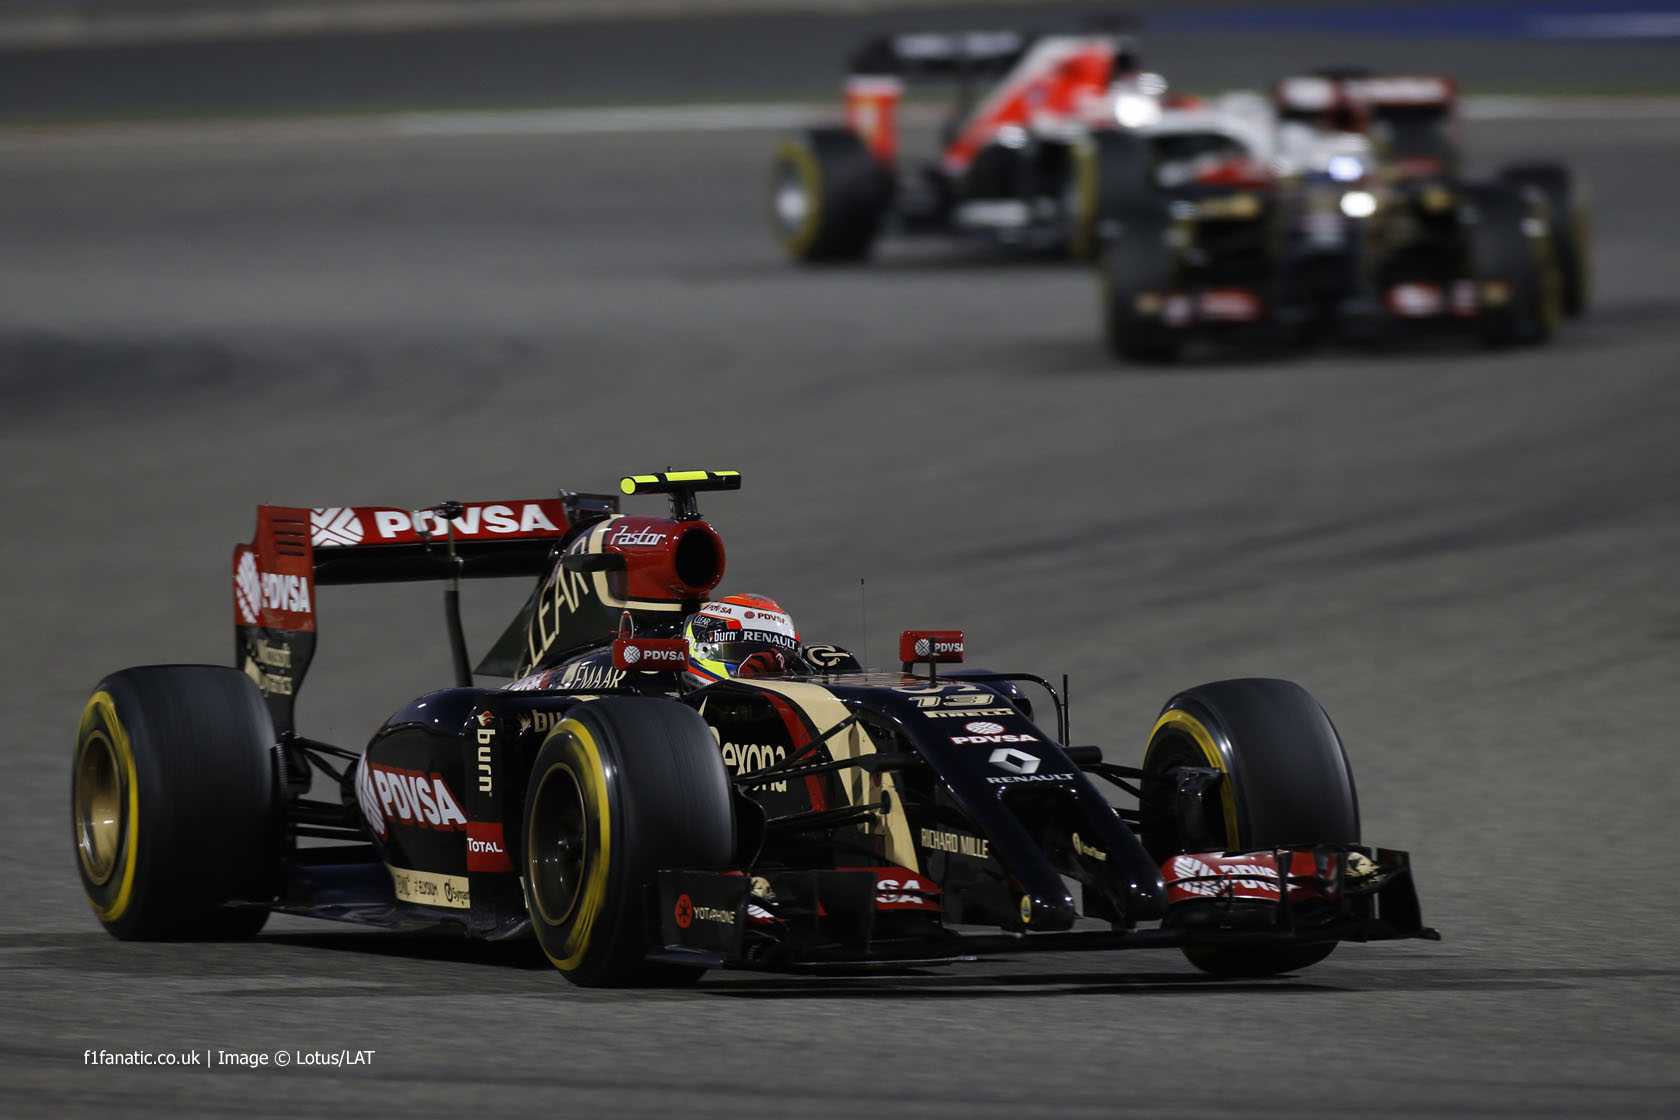 Pastor Maldonado, Lotus, Bahrain International Circuit, 2014